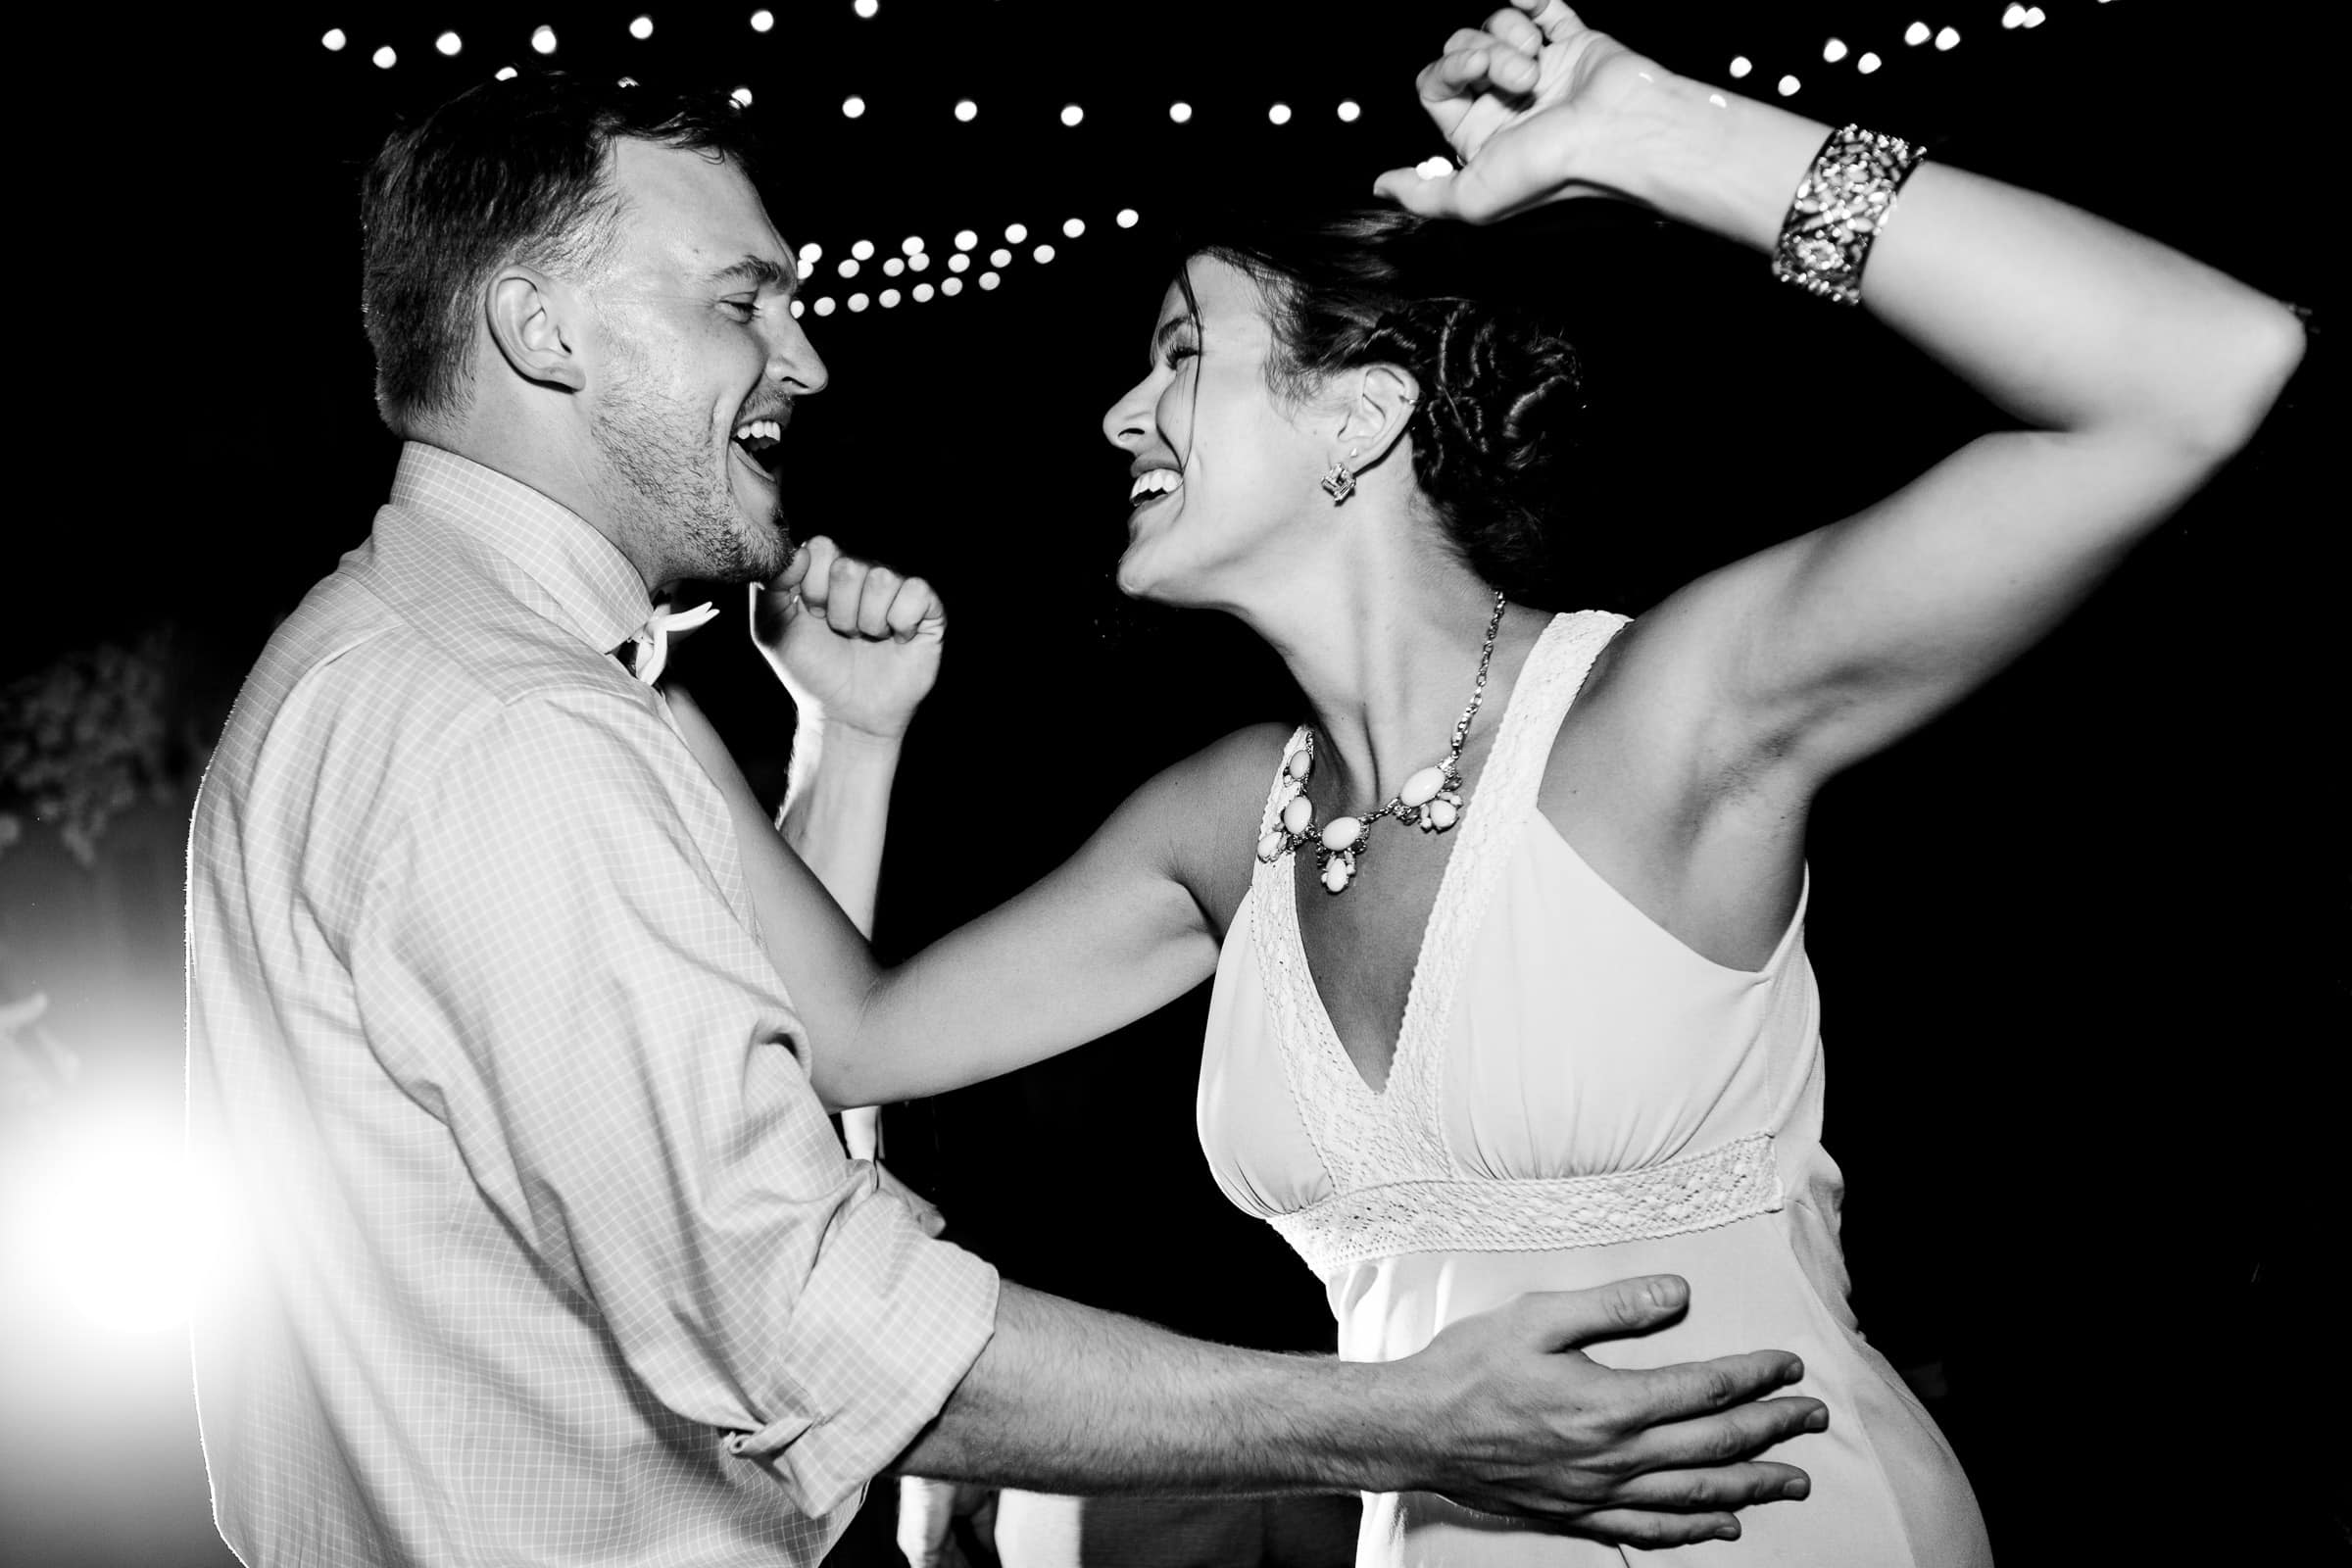 Epic dancing photo at a Black Butte Ranch wedding reception in Central Oregon